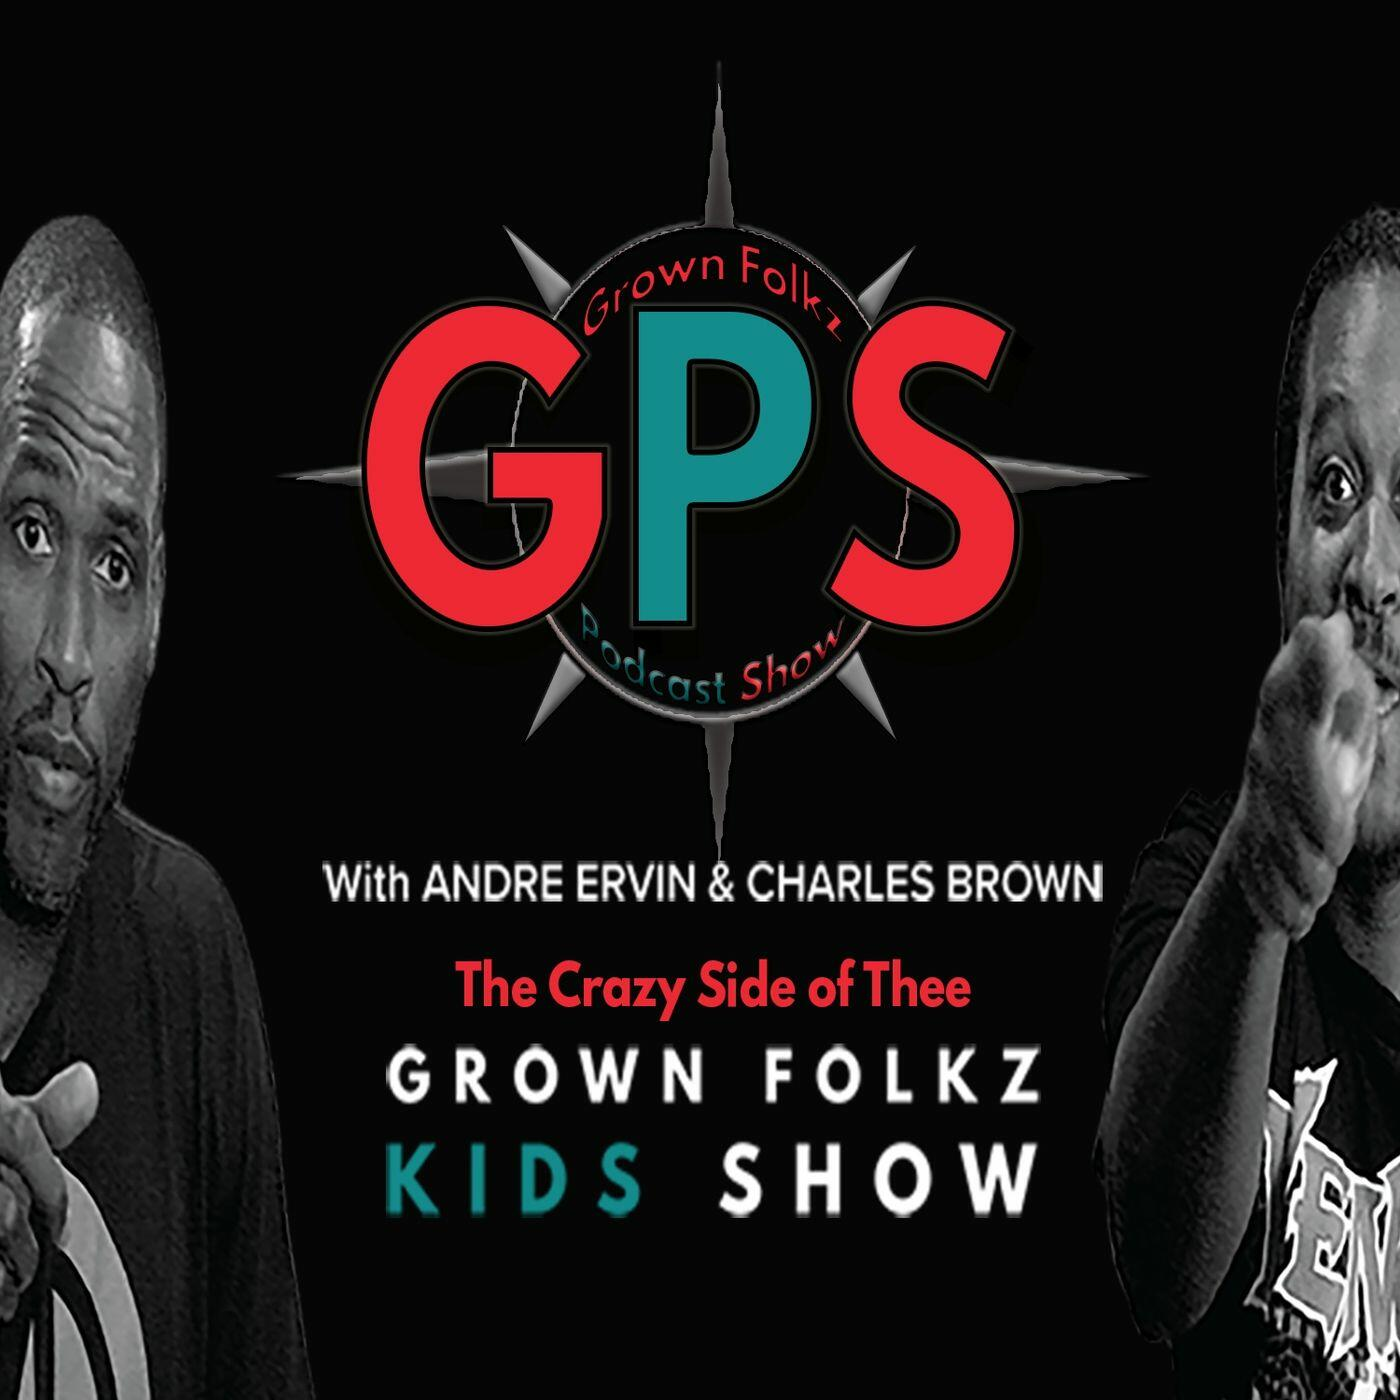 Grown Folks Kids Show's GPS